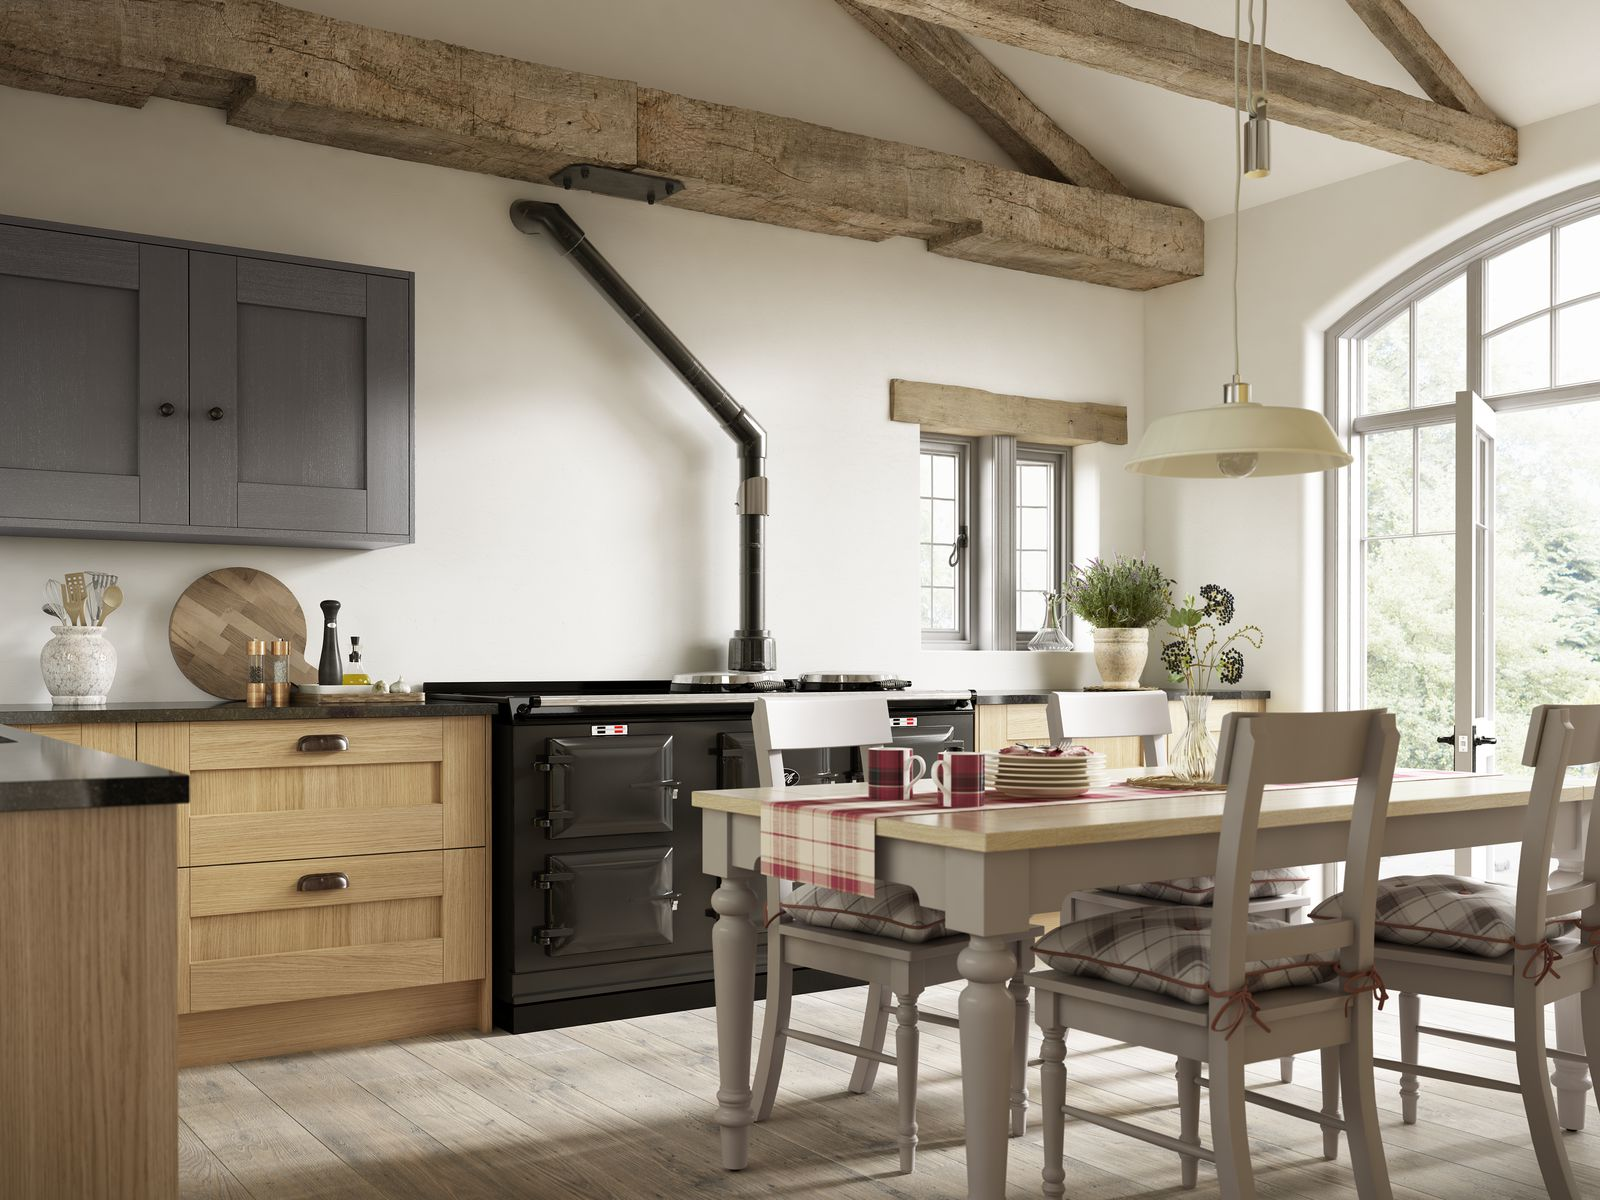 Linton Collection Laura Ashley Glotech Kitchens